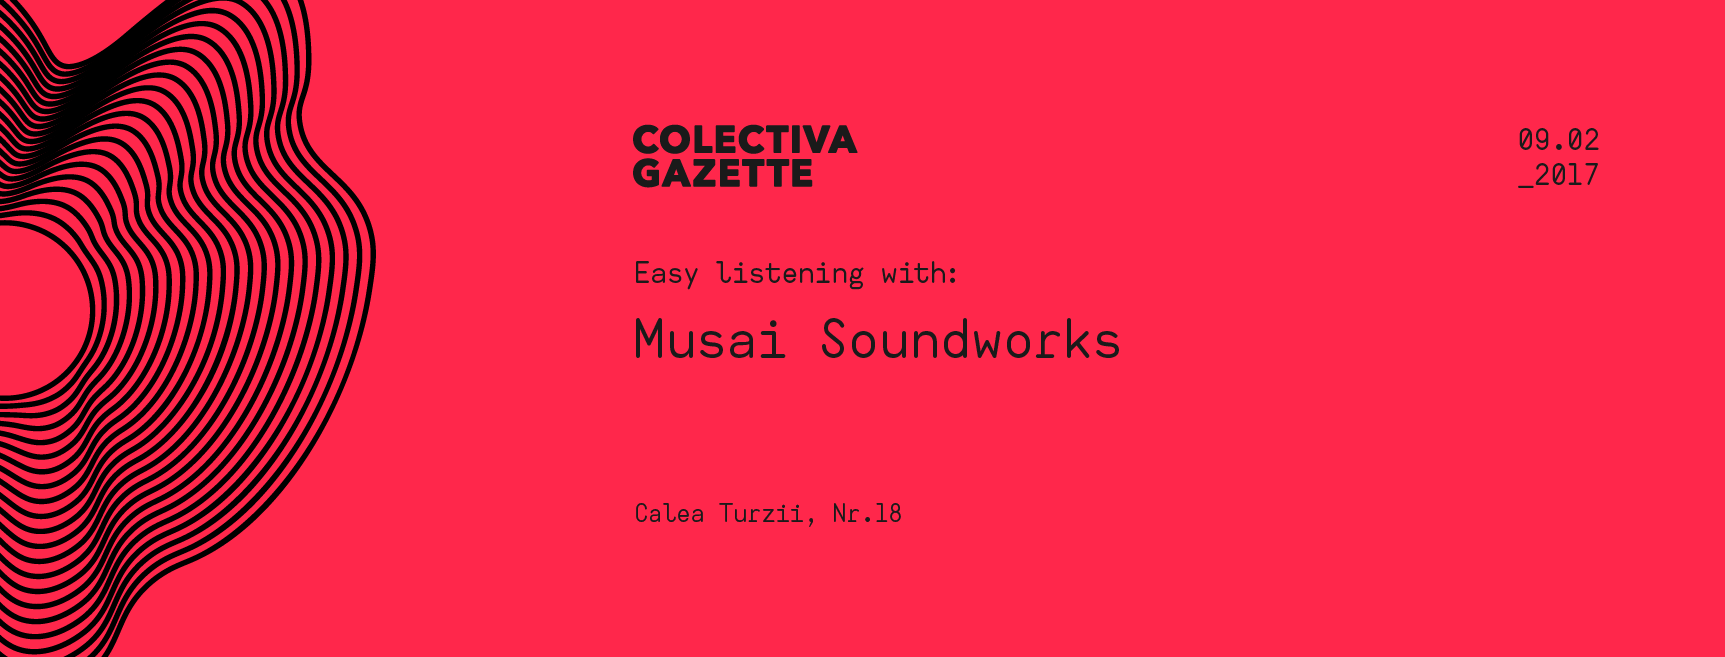 Easy Listening with Musai Soundworks